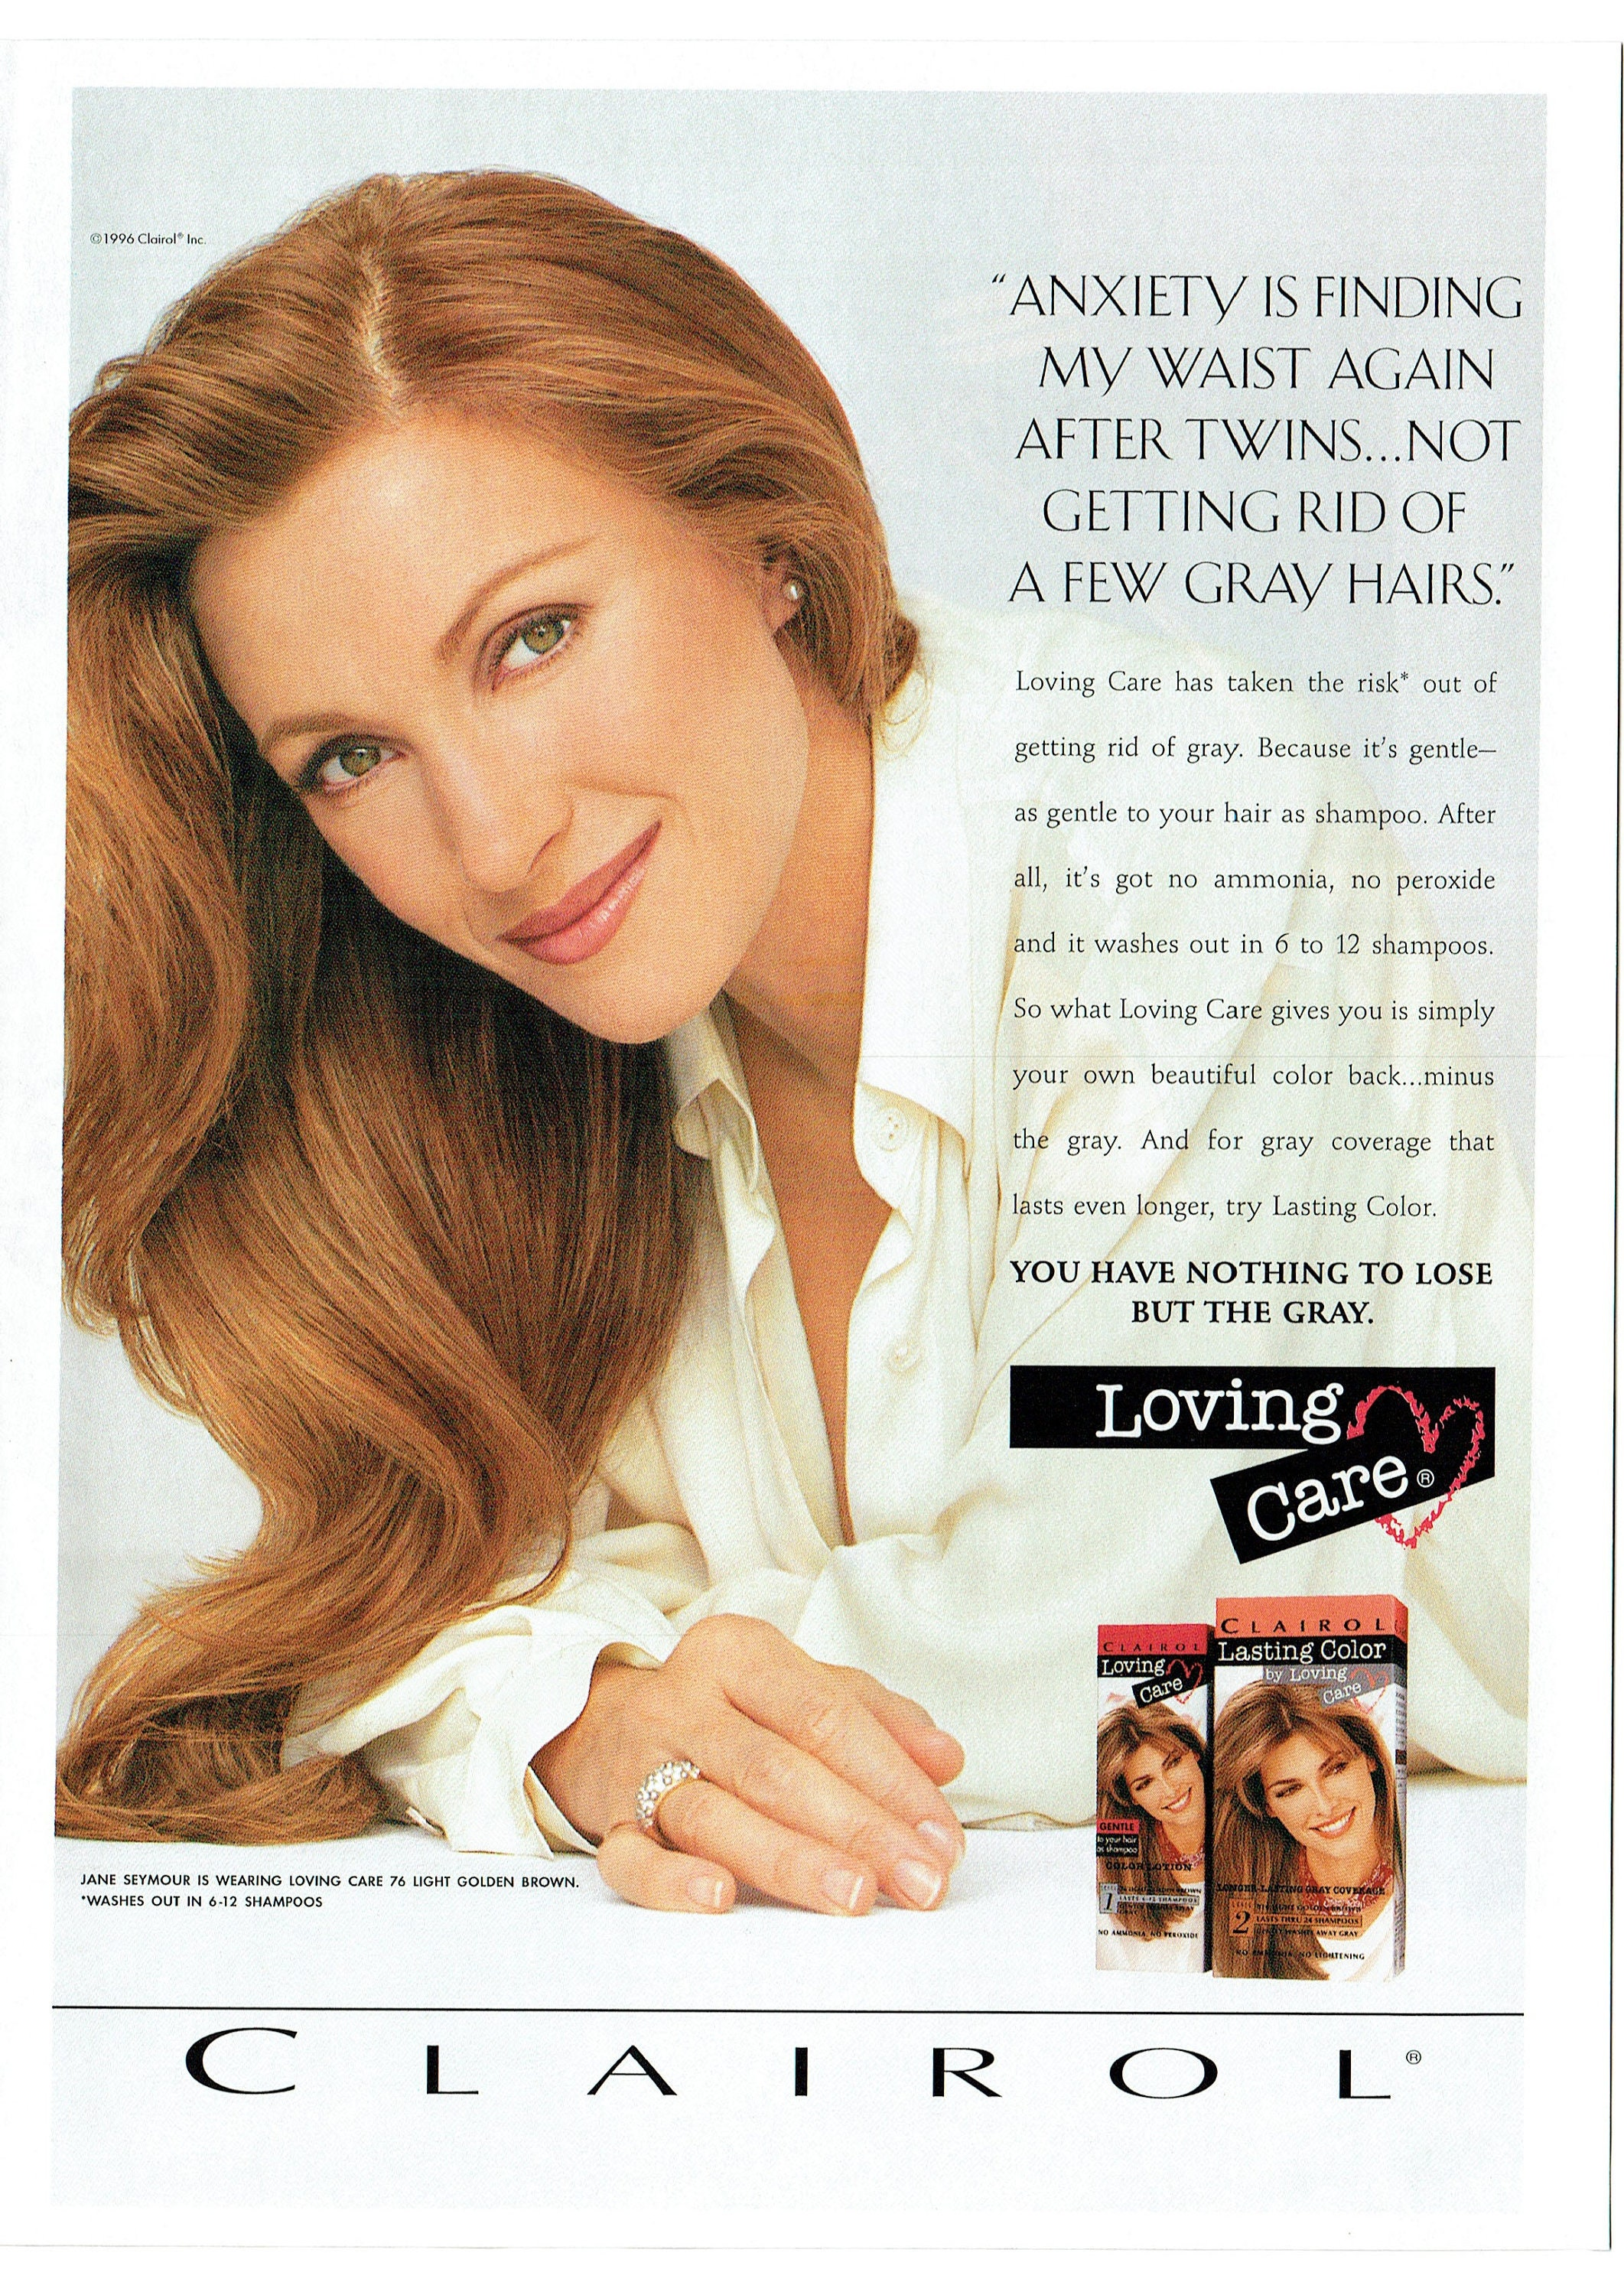 1997 Advertisement Jane Seymour Clairol Loving Care Hair Lasting Color Dye Actress Endorsement Lose The Gray Salon Celebrity Wall Art Decor